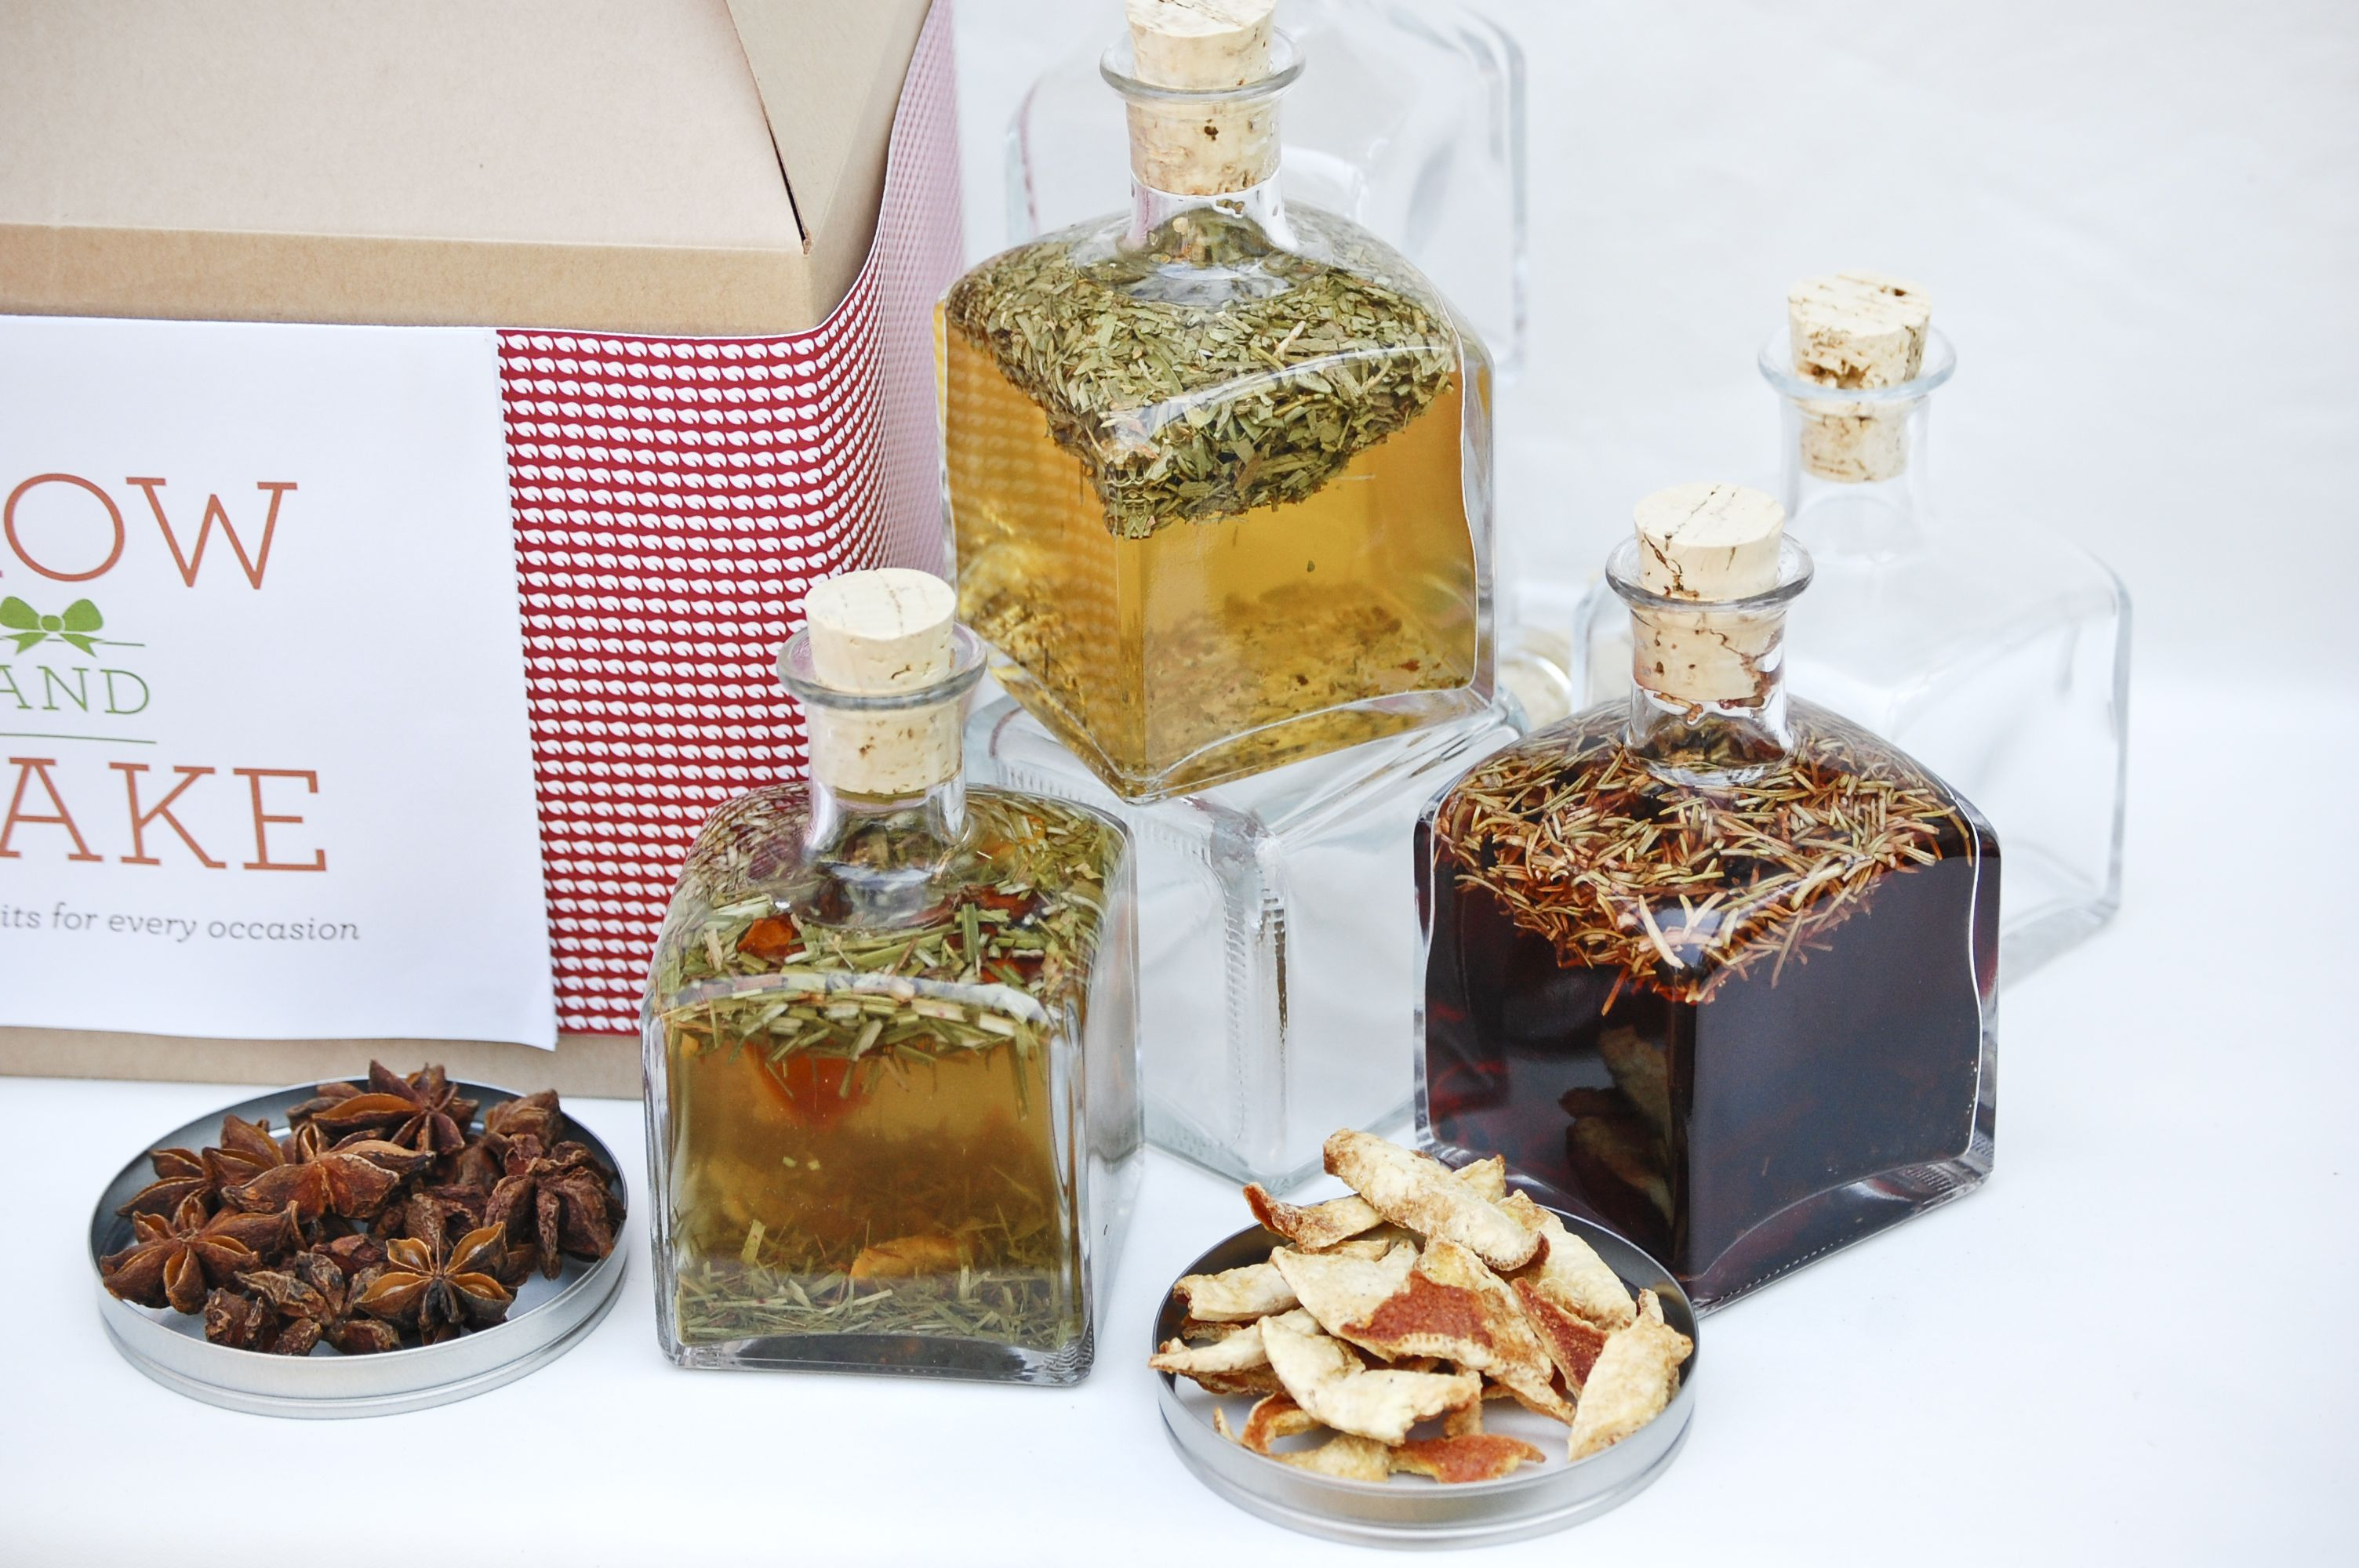 Start making your own infused vinegars and put them in